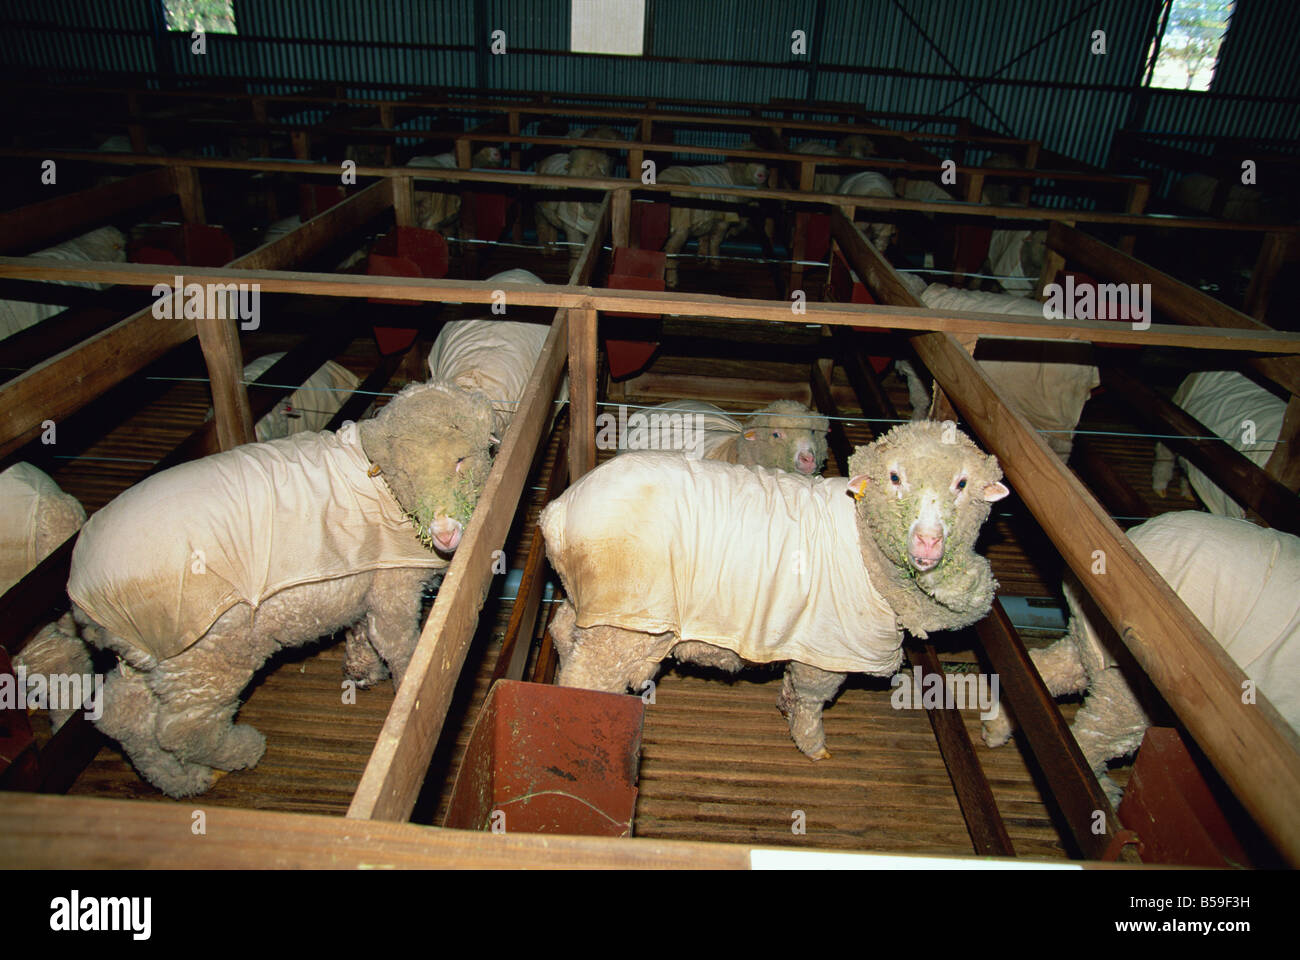 Sheep kept indoors to produce finer wool at the Wimmera Wool Factory, a community project at Horsham, Victoria, - Stock Image